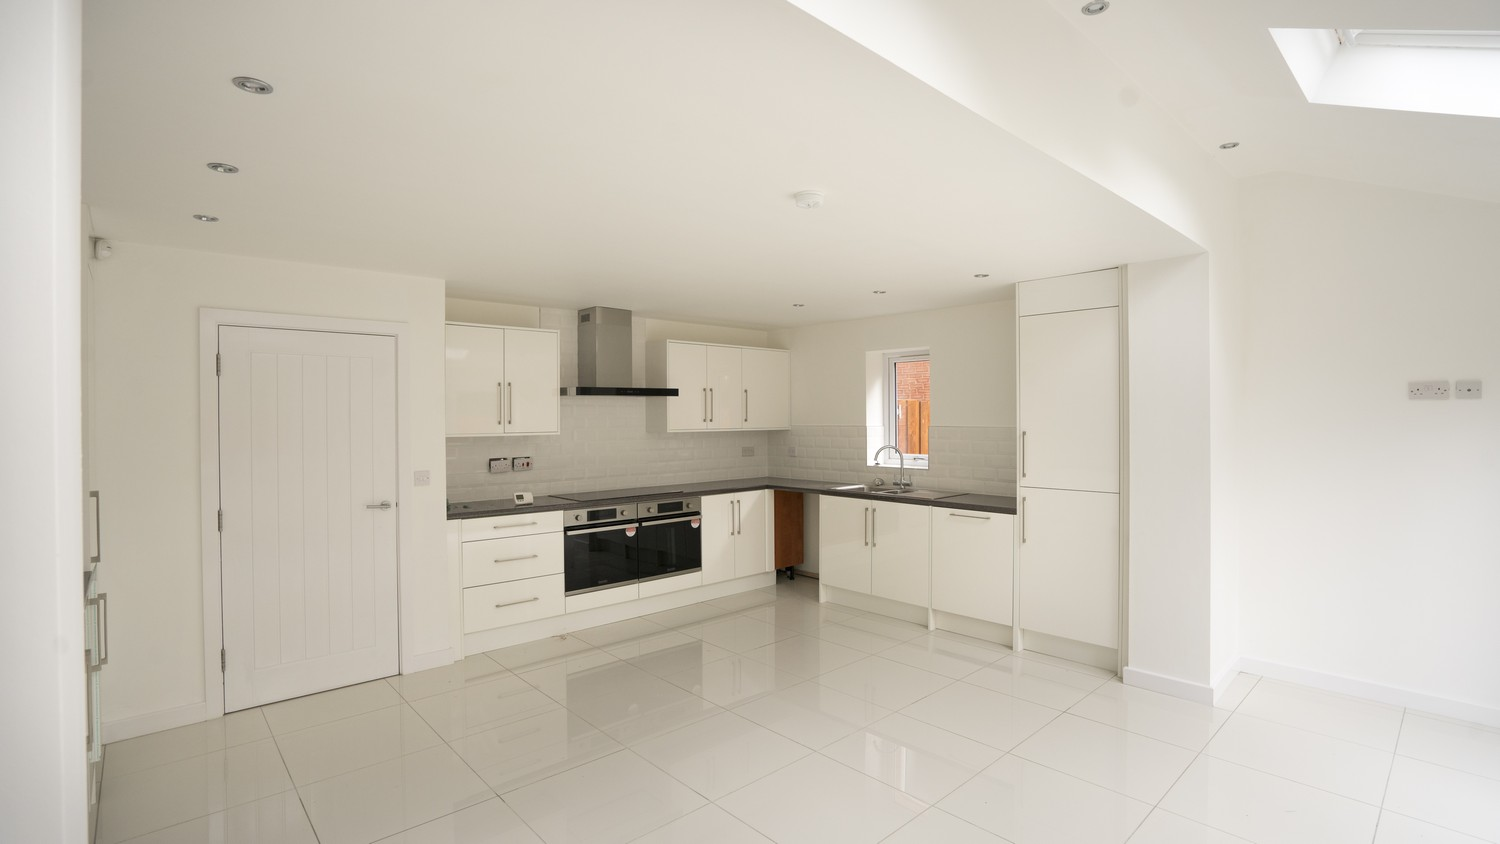 Gloss white kitchen installed featuring dual ovens, integrated appliances, lots of storage space and a large extractor fan.